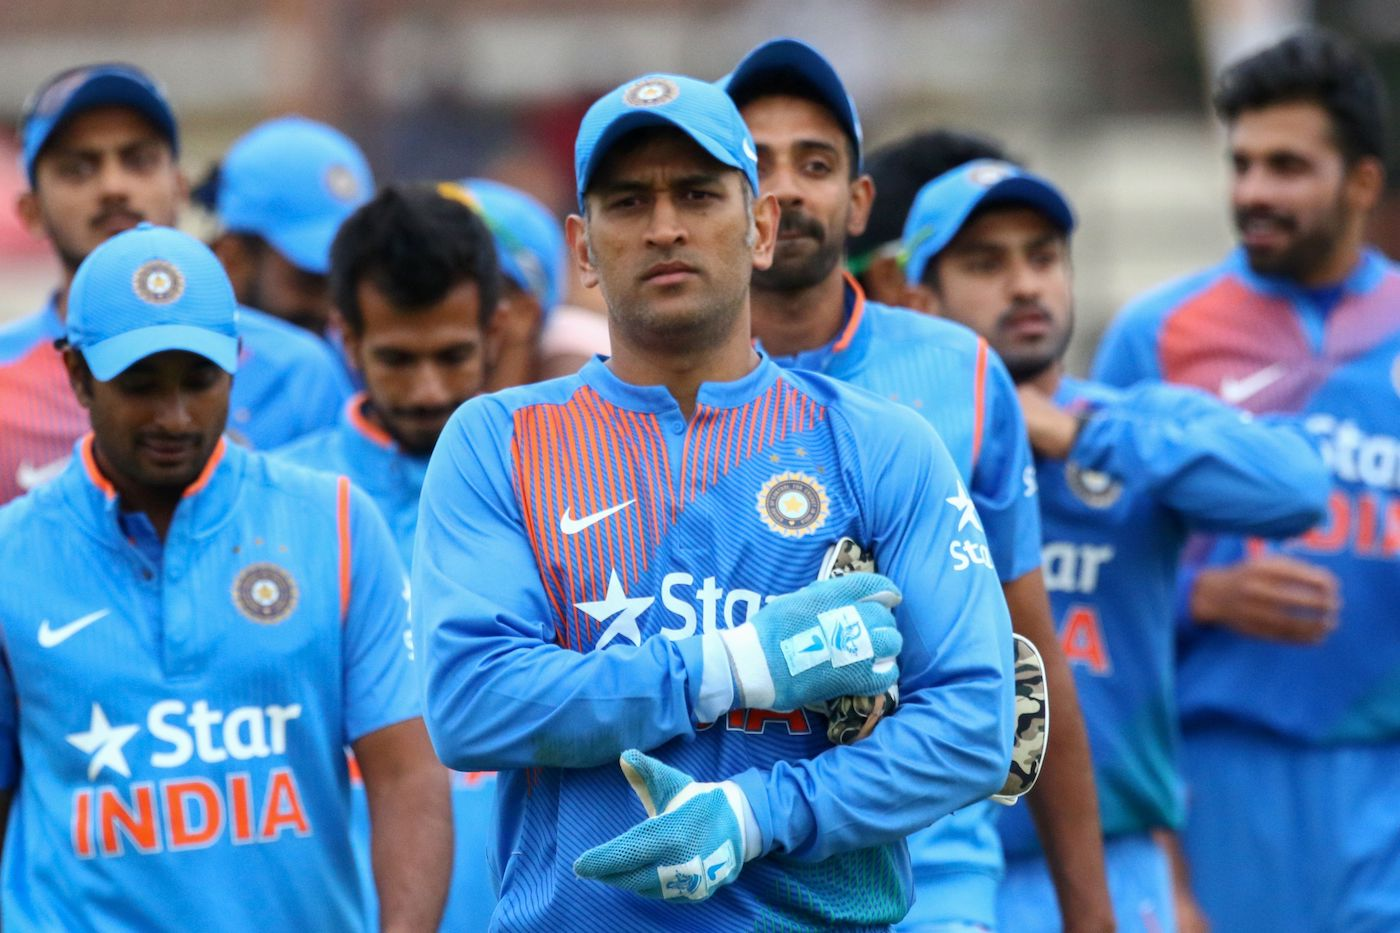 Dhoni dismantled external influences on the India dressing room, so younger players could breathe free